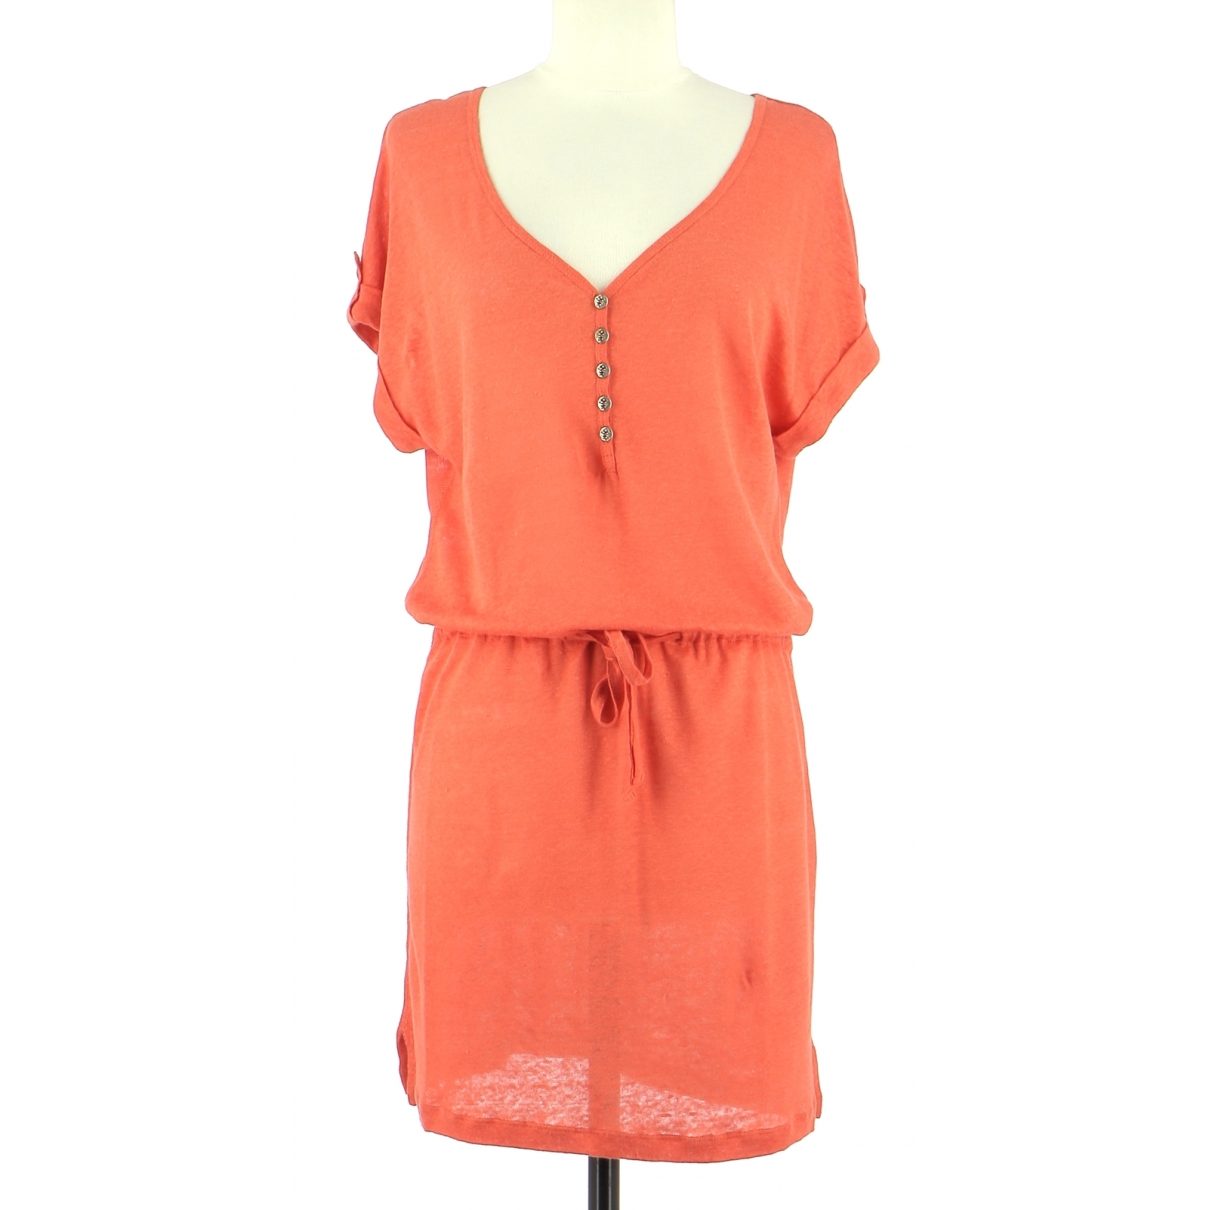 Autre Marque \N Orange Linen dress for Women 36 FR